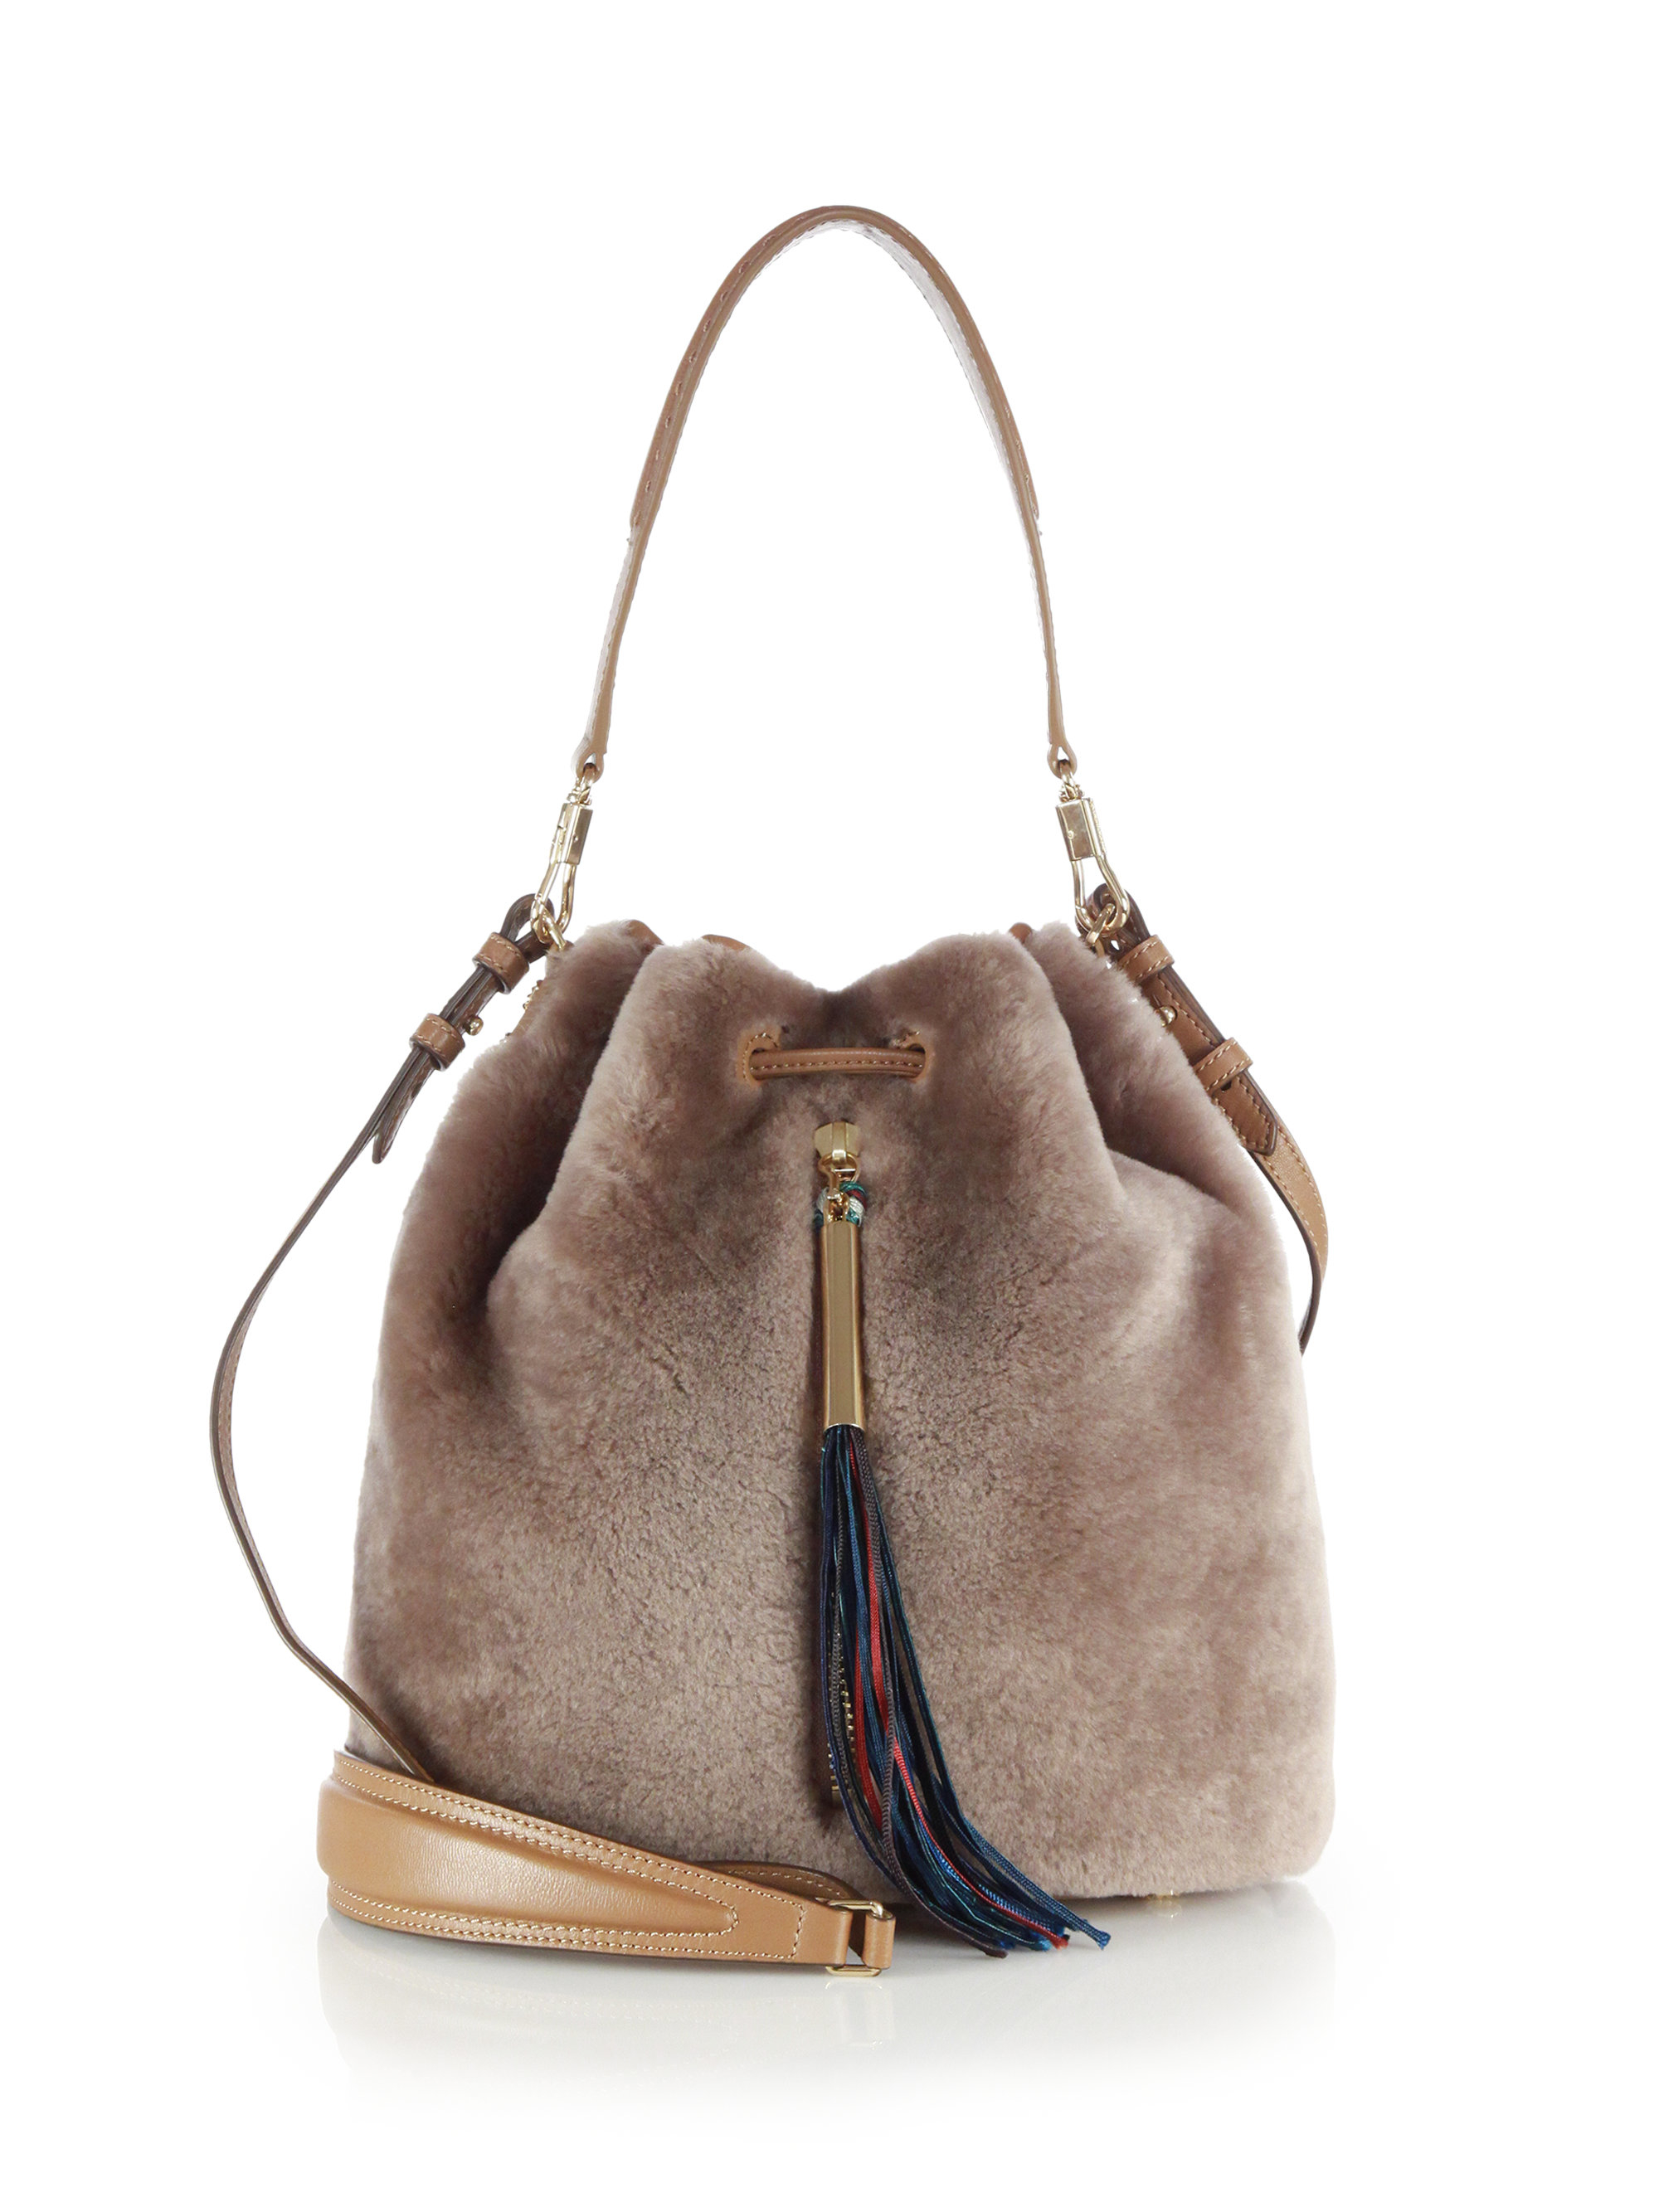 Bag At You Fashion Blog Hip E Bags White Backpack: Elizabeth And James Cynnie Shearling Bucket Bag In Gray